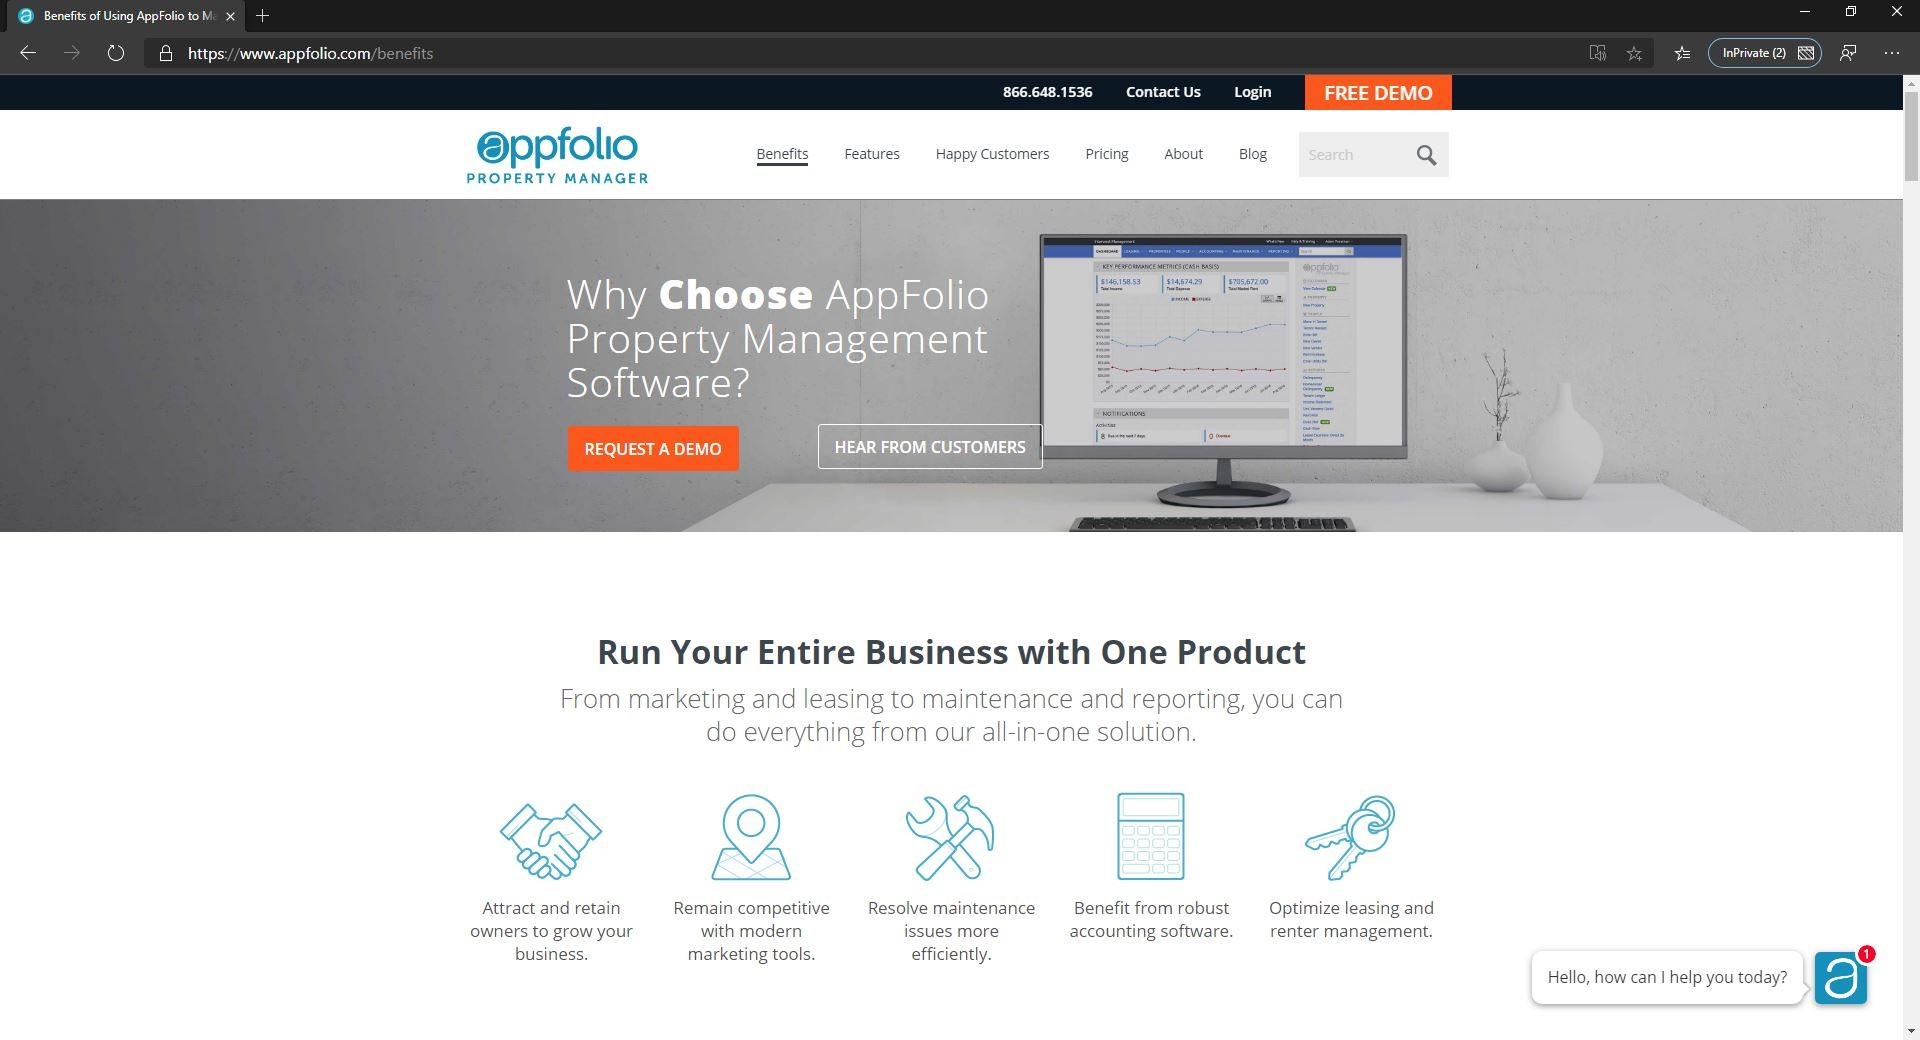 The Best Property Management Companies By Unit Volume - Image 8